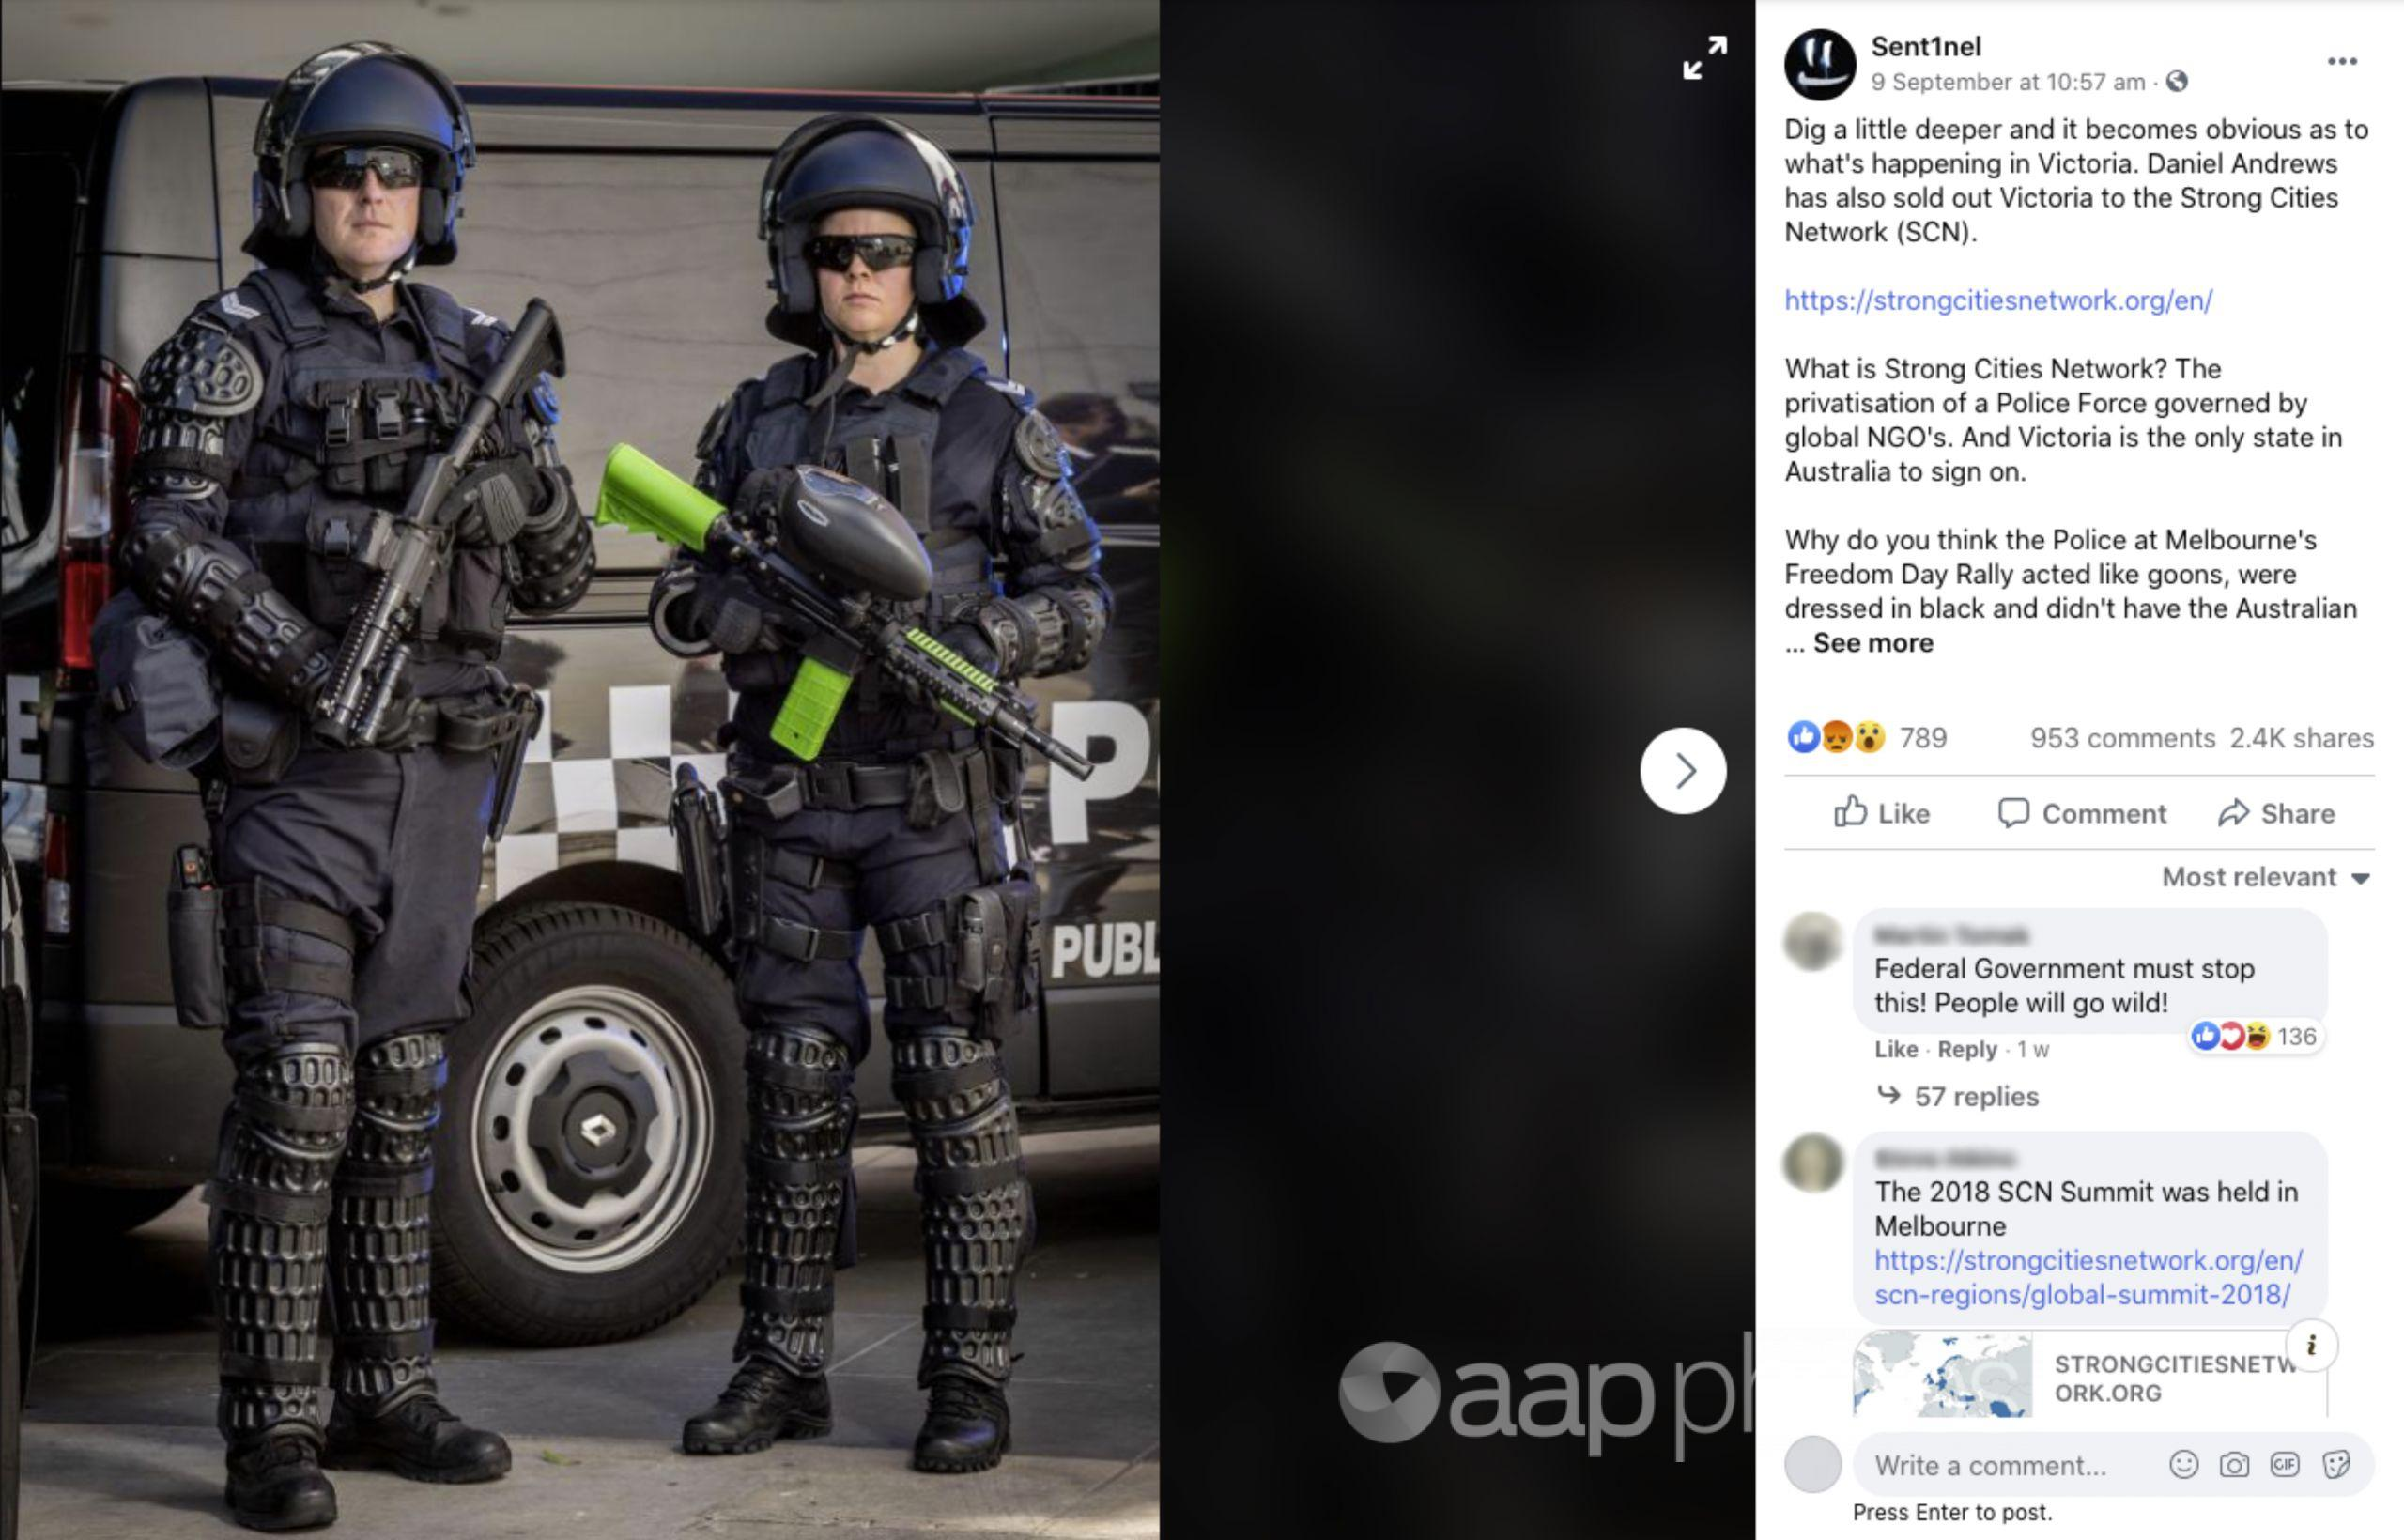 A Facebook post falsely suggesting Victoria Police are privatised